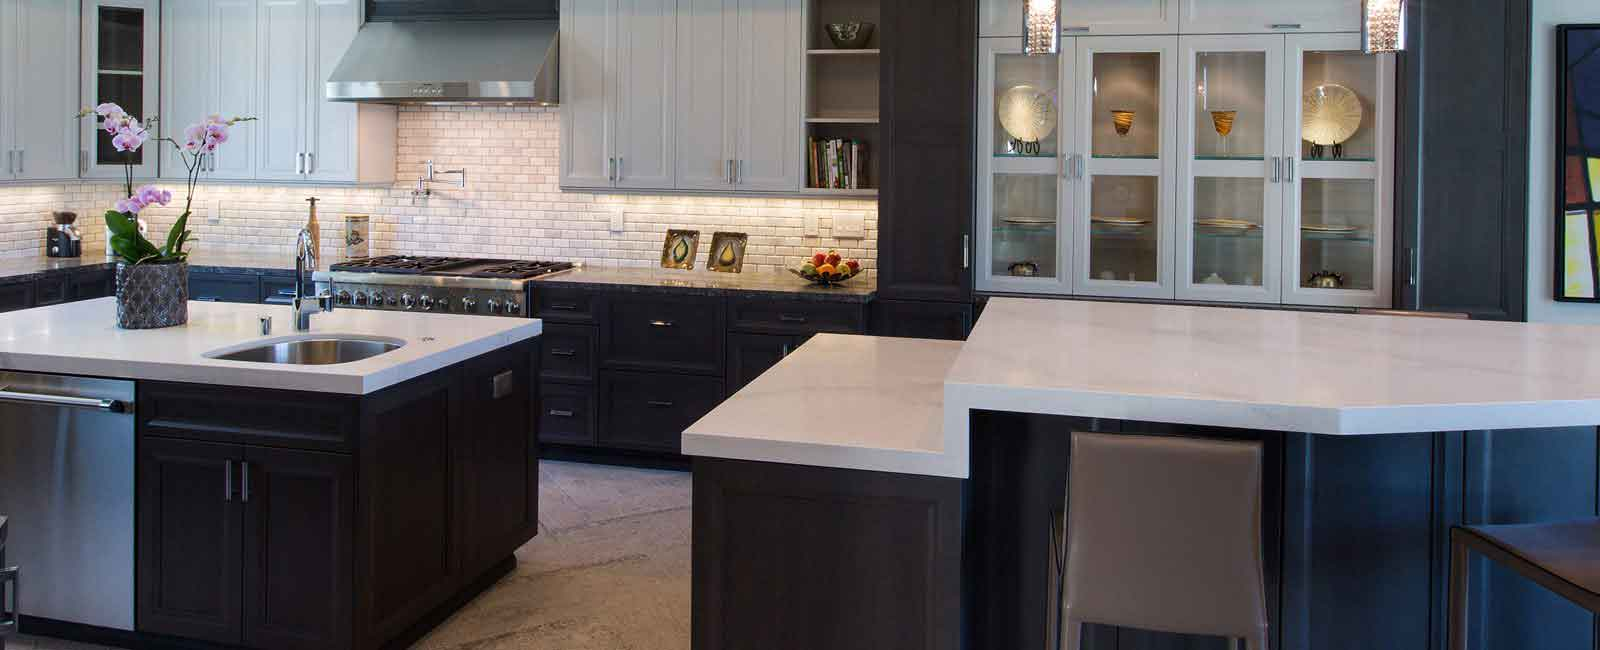 Custom Kitchen Countertops In Santa Monica CA